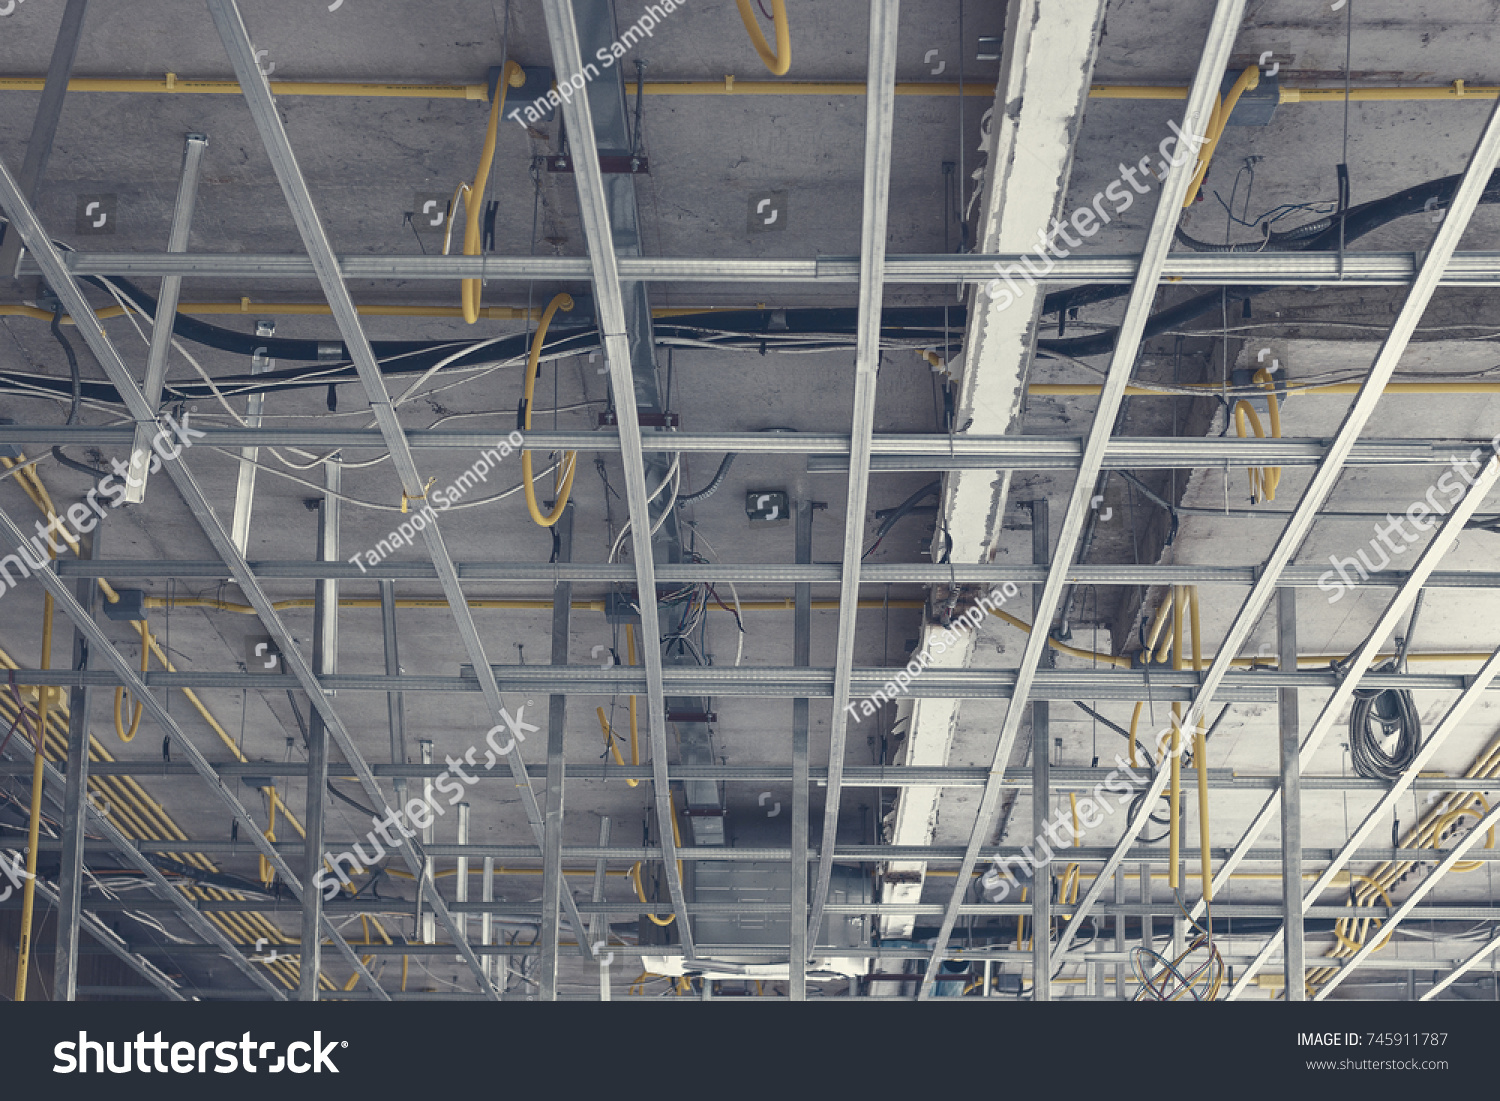 PVC Pipes Electrical Wiring Above Ceiling Stock Photo (Royalty Free ...